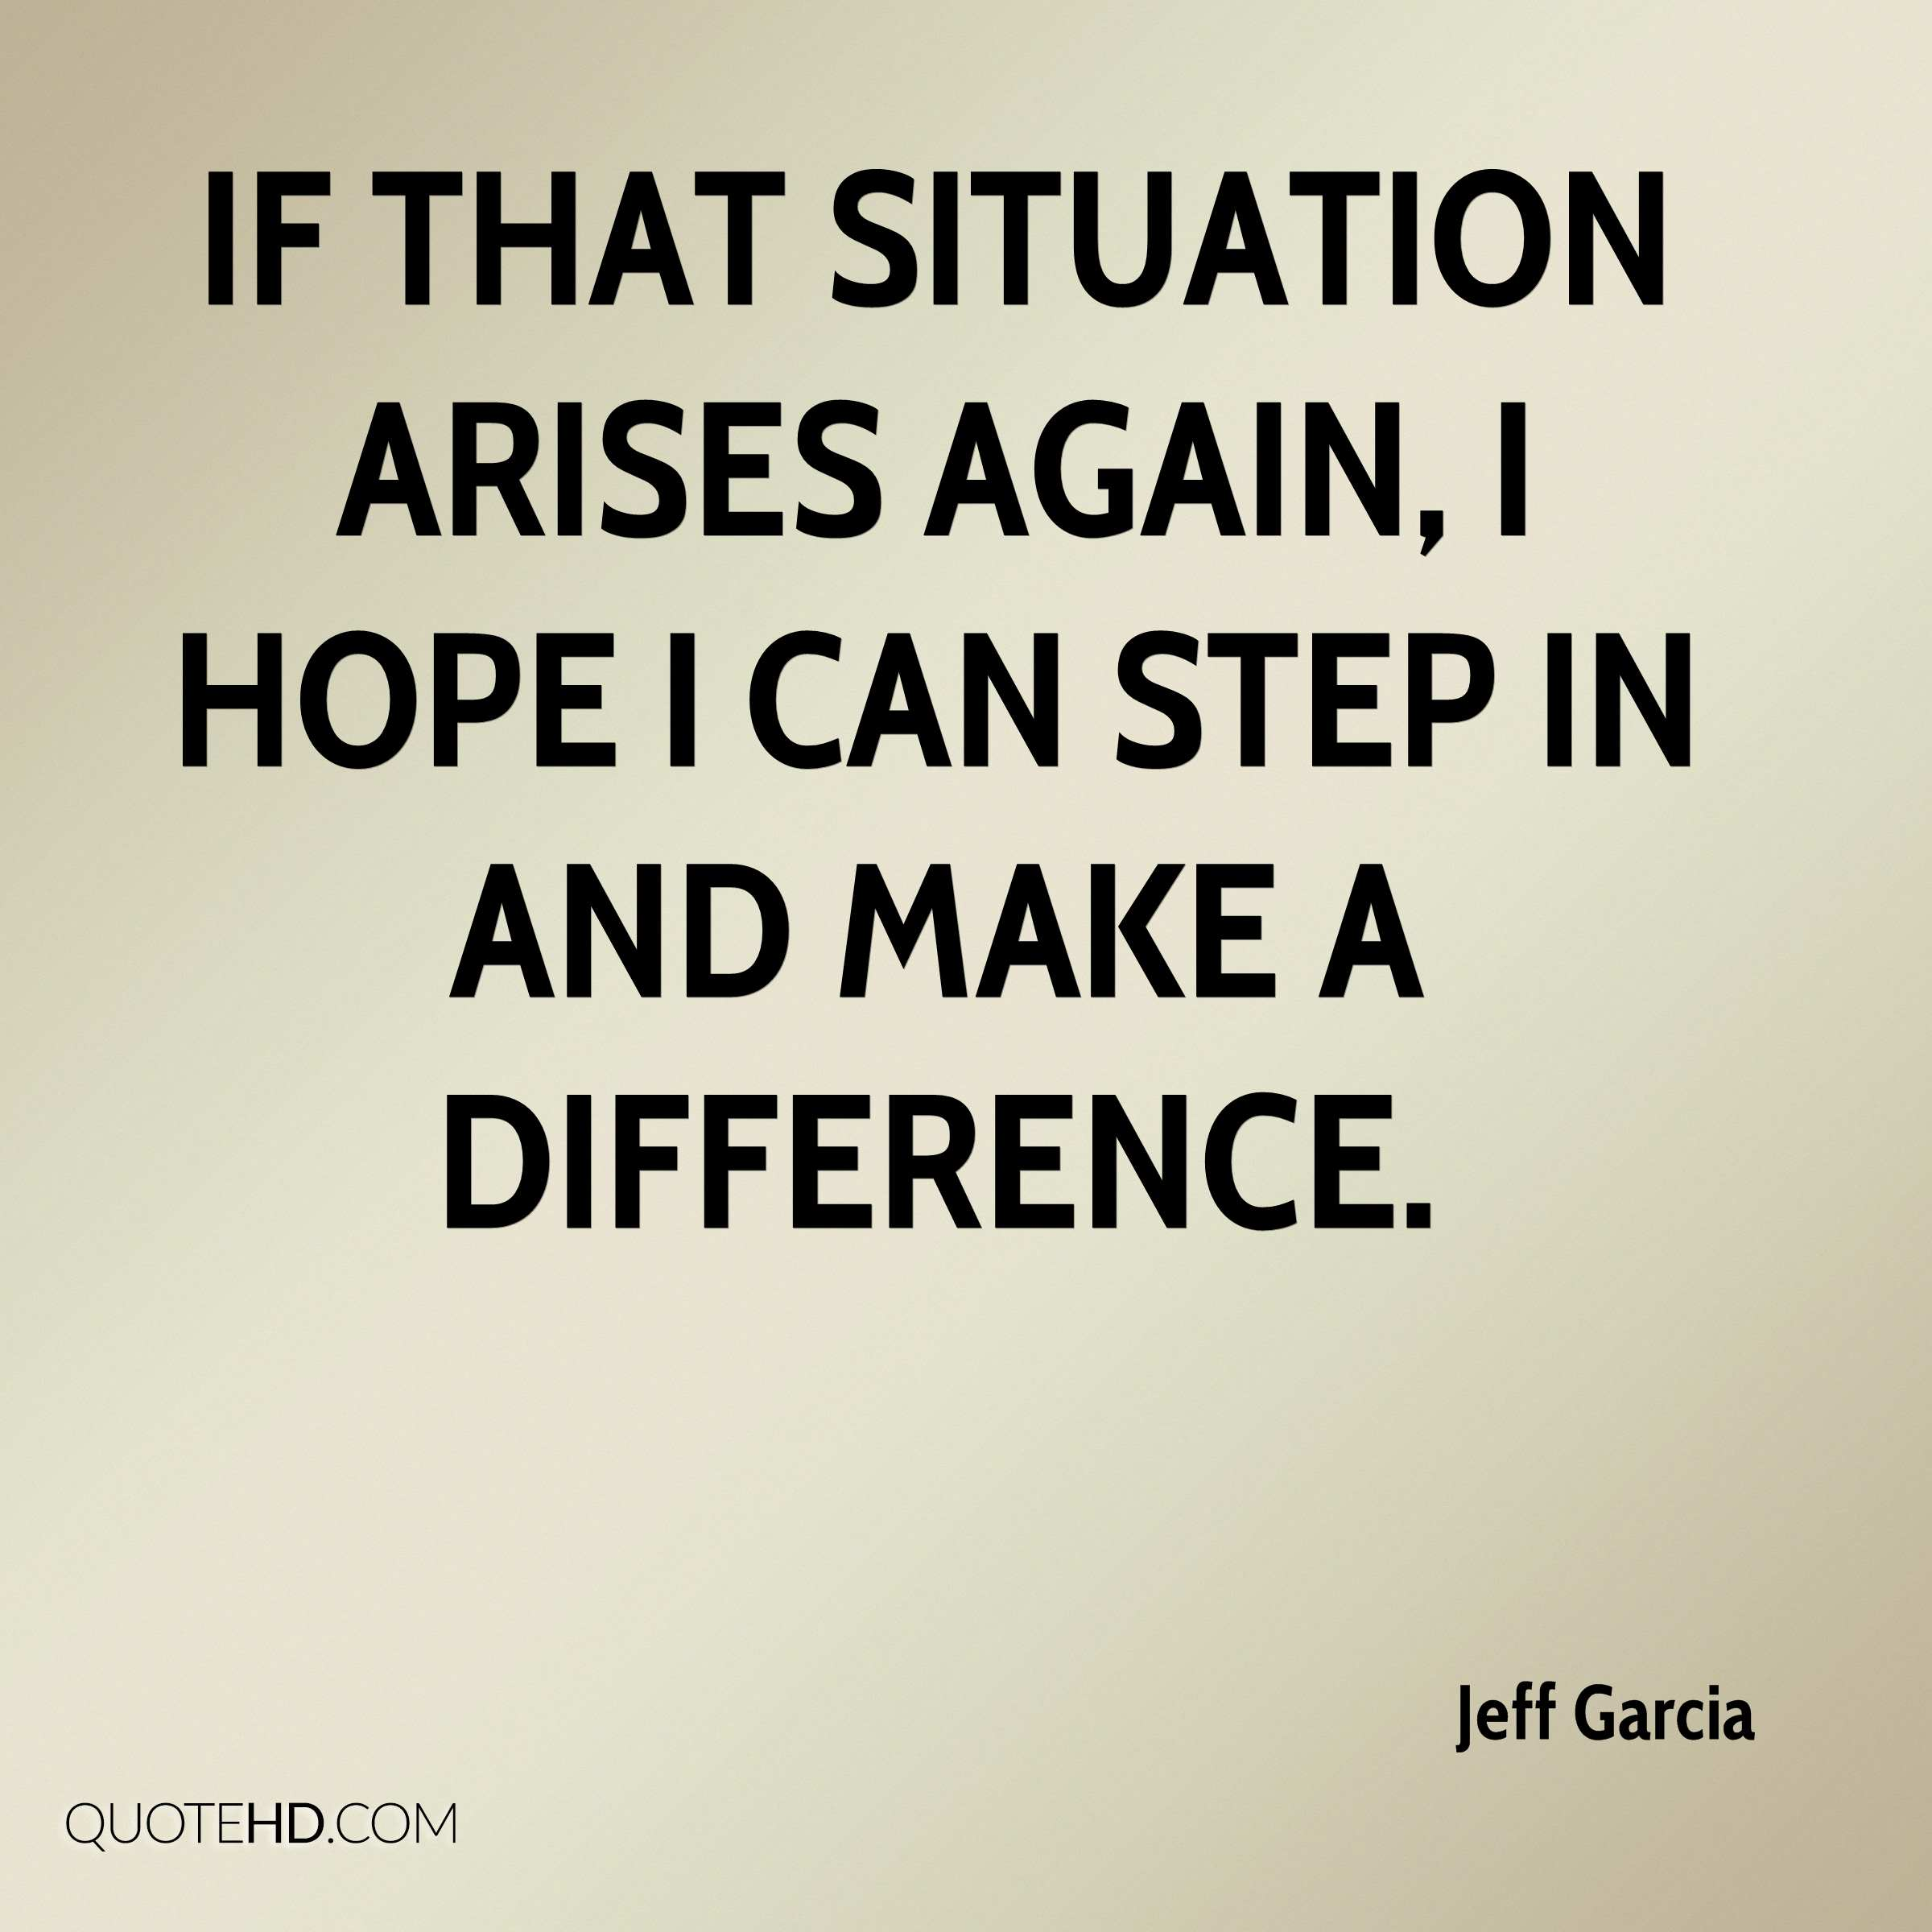 If that situation arises again, I hope I can step in and make a difference.